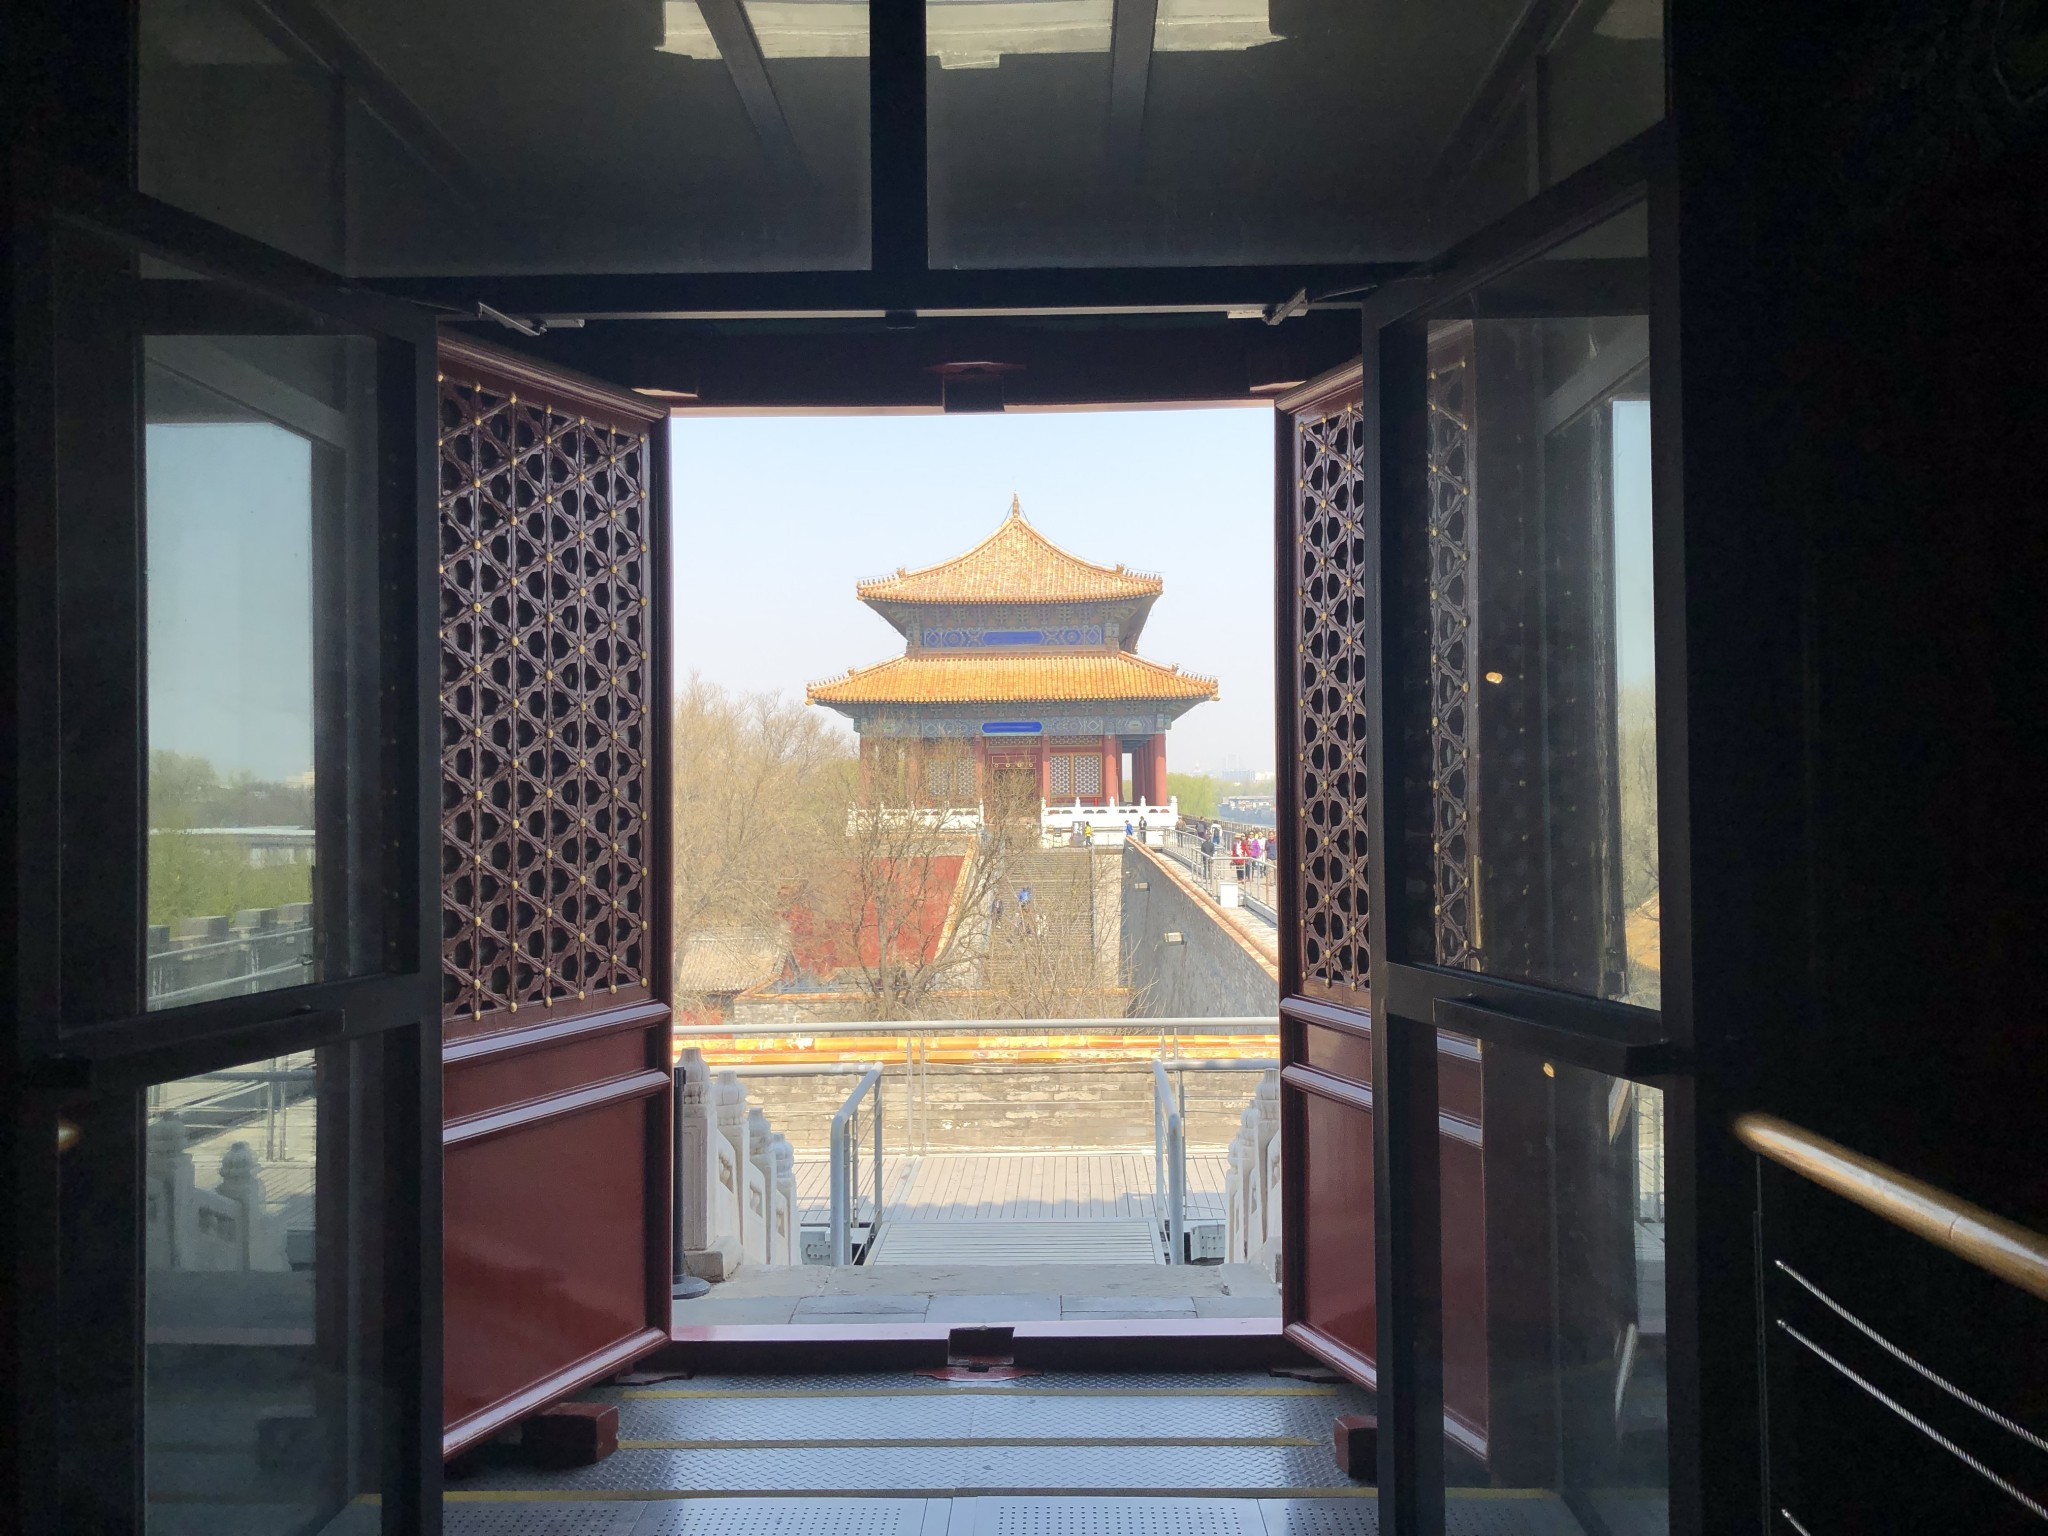 3 days in Beijing itinerary: Visiting Beijing, China